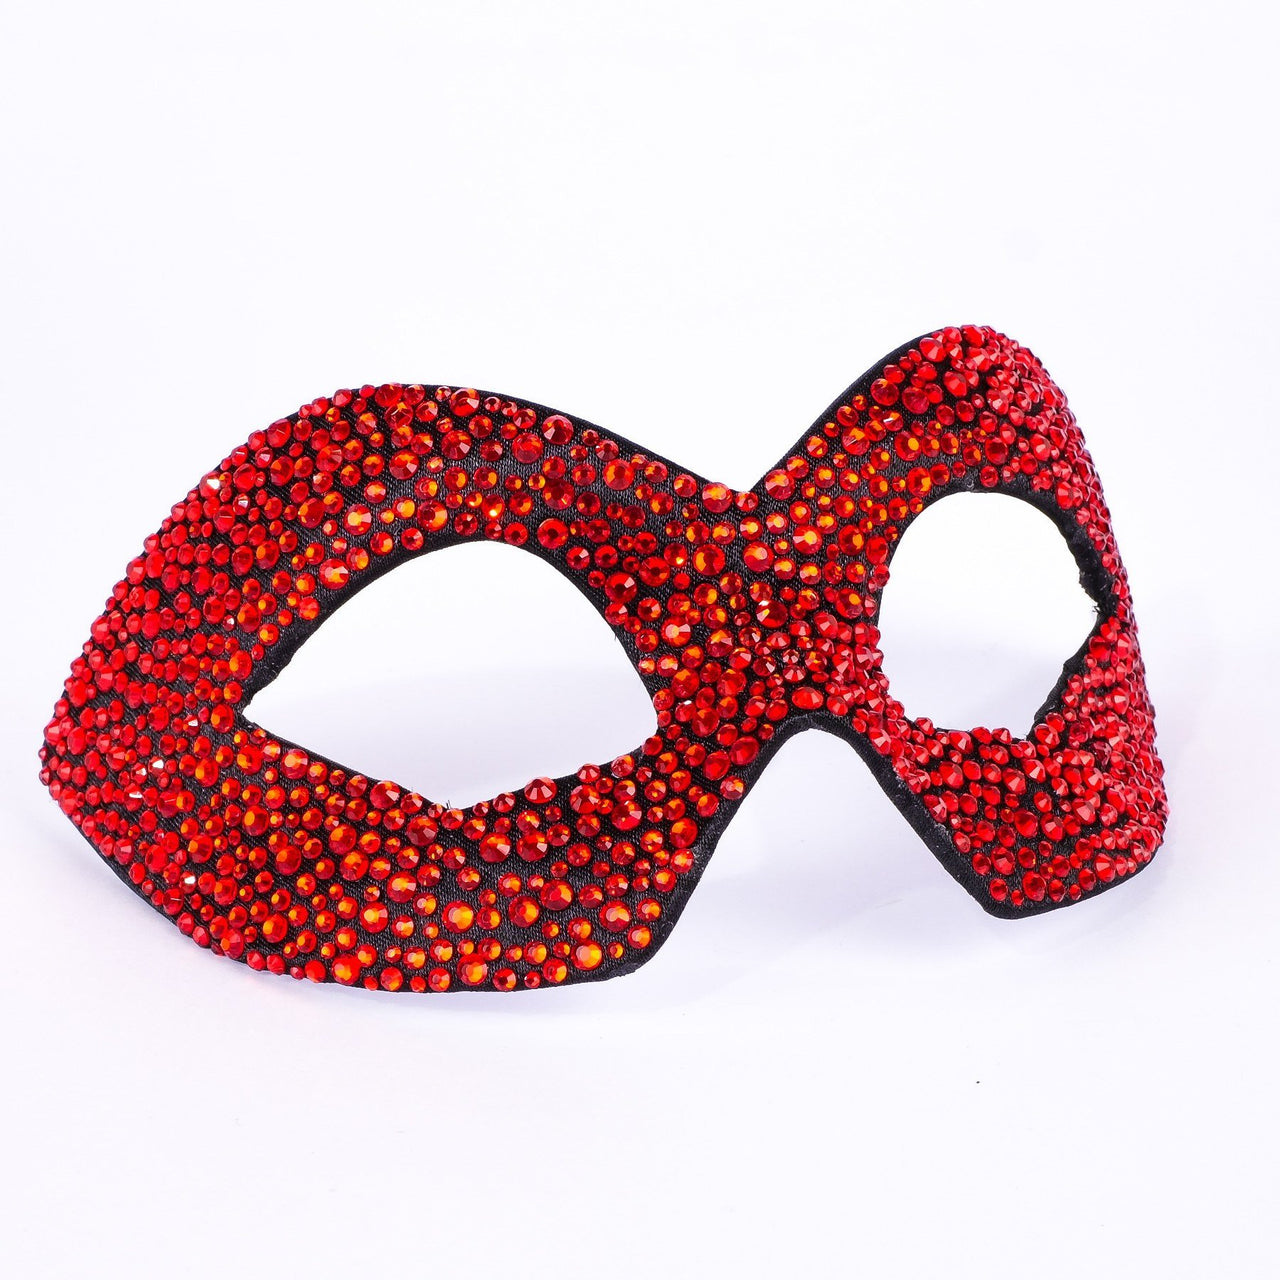 Hero Strass Red Black Masquerade Mask